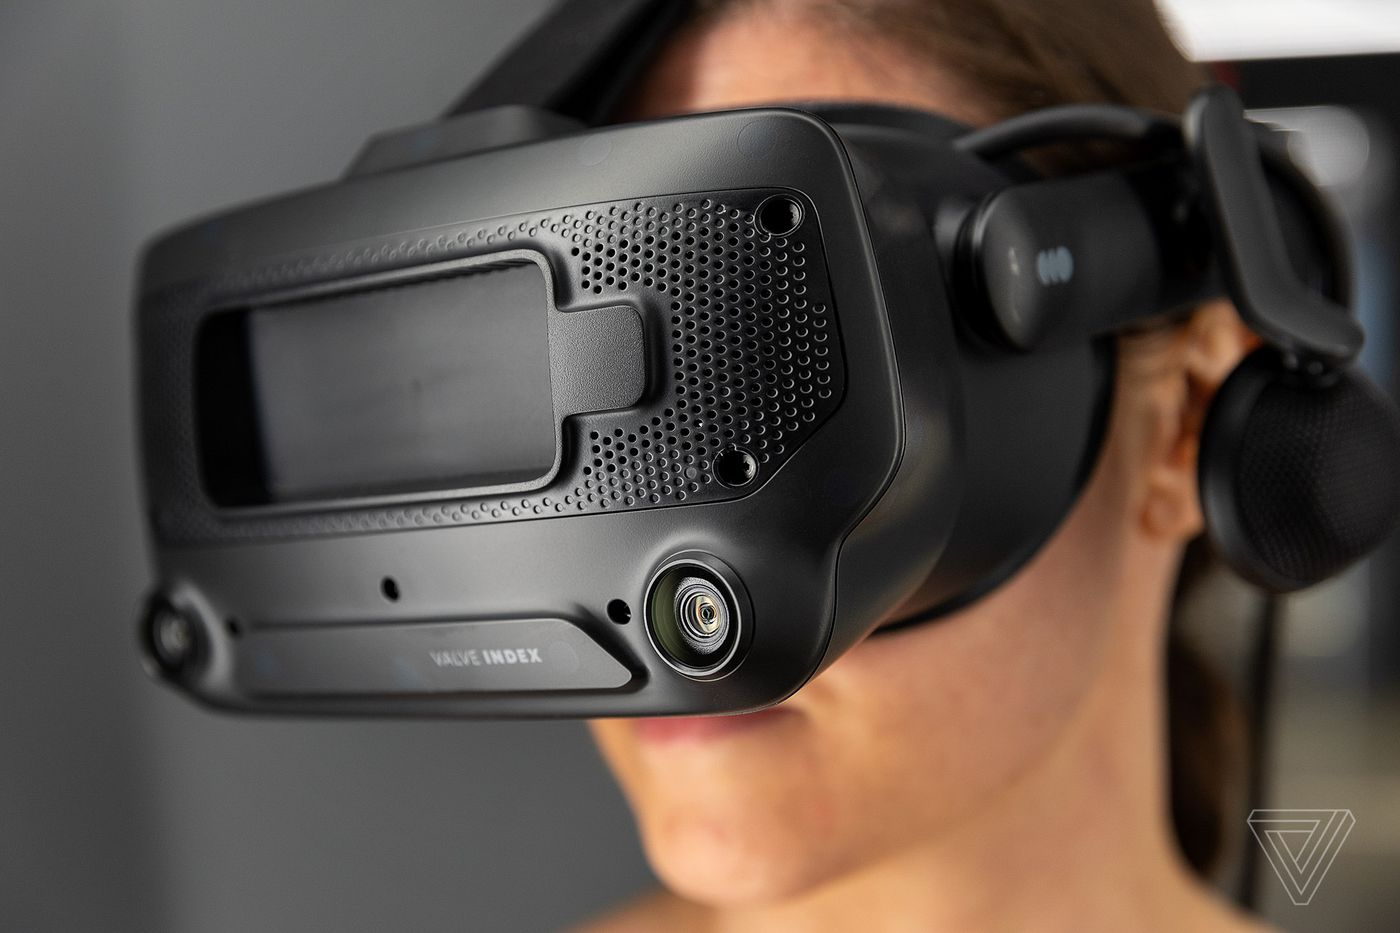 Valve Index review: high-powered VR at a high-end price - The Verge